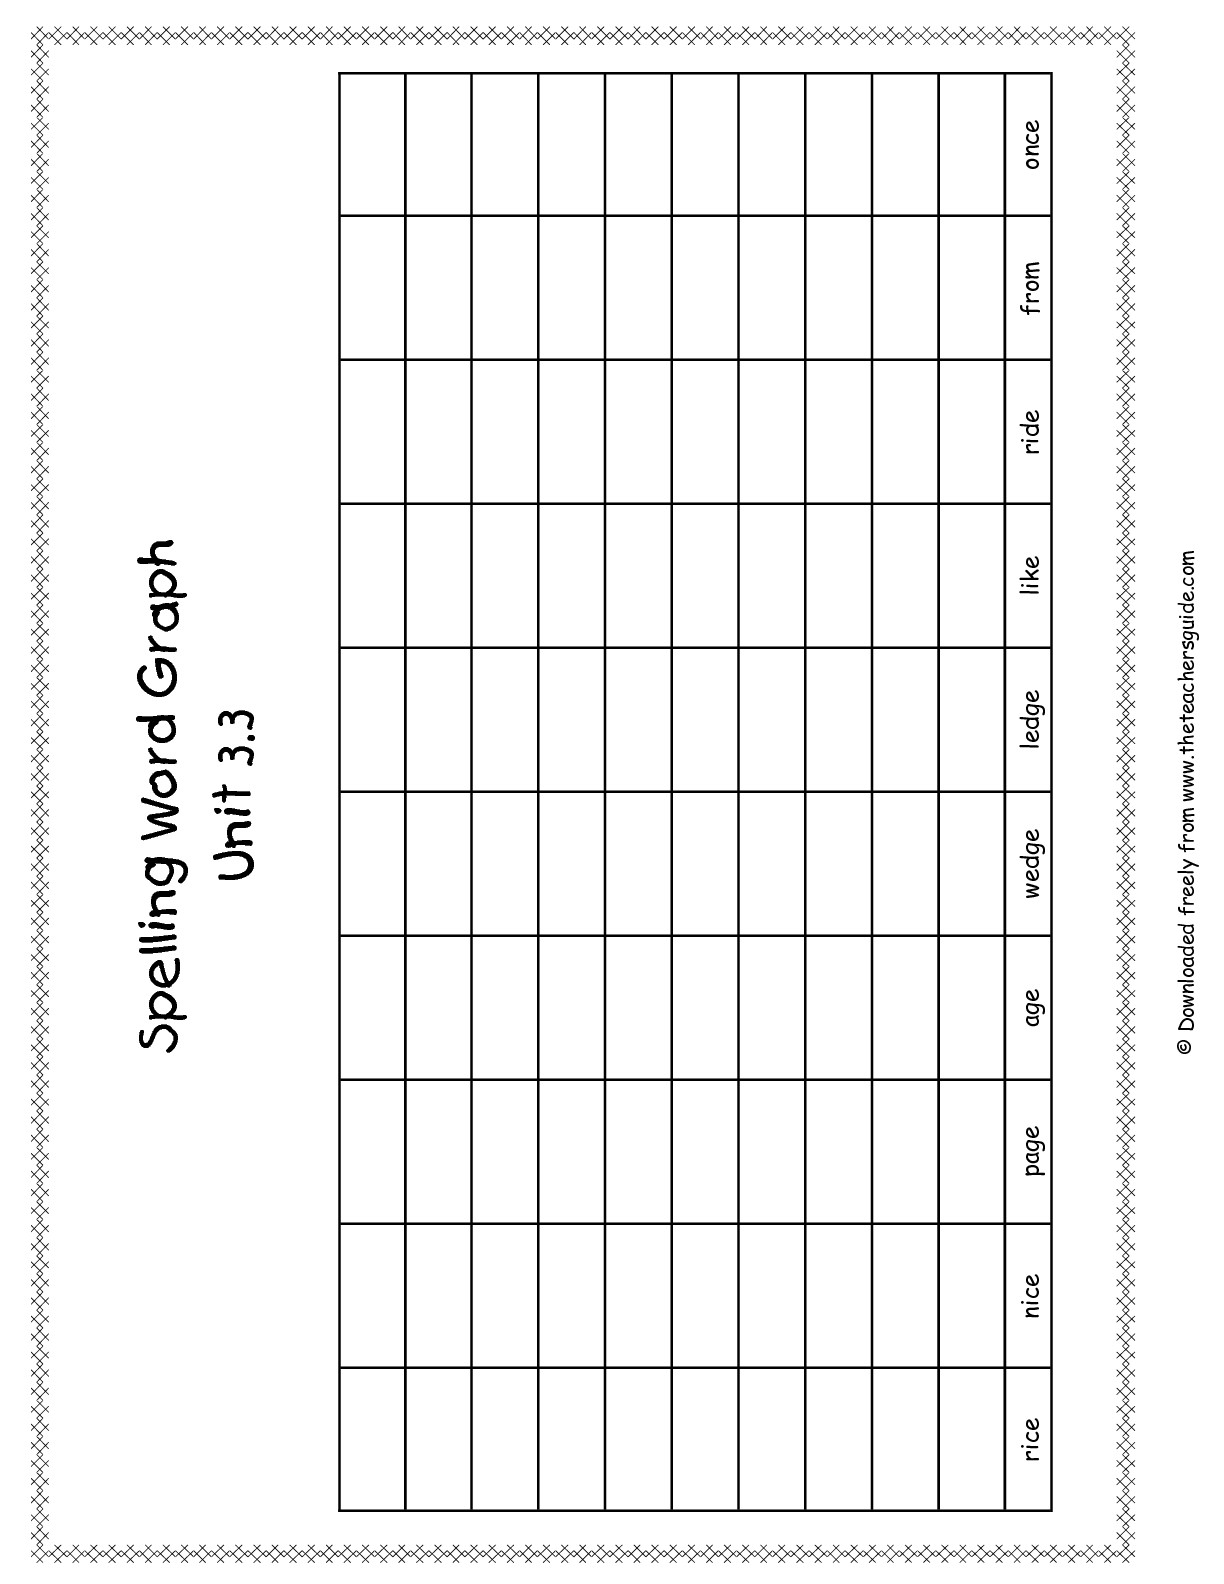 11 Best Images Of First Grade Abc Order Worksheets